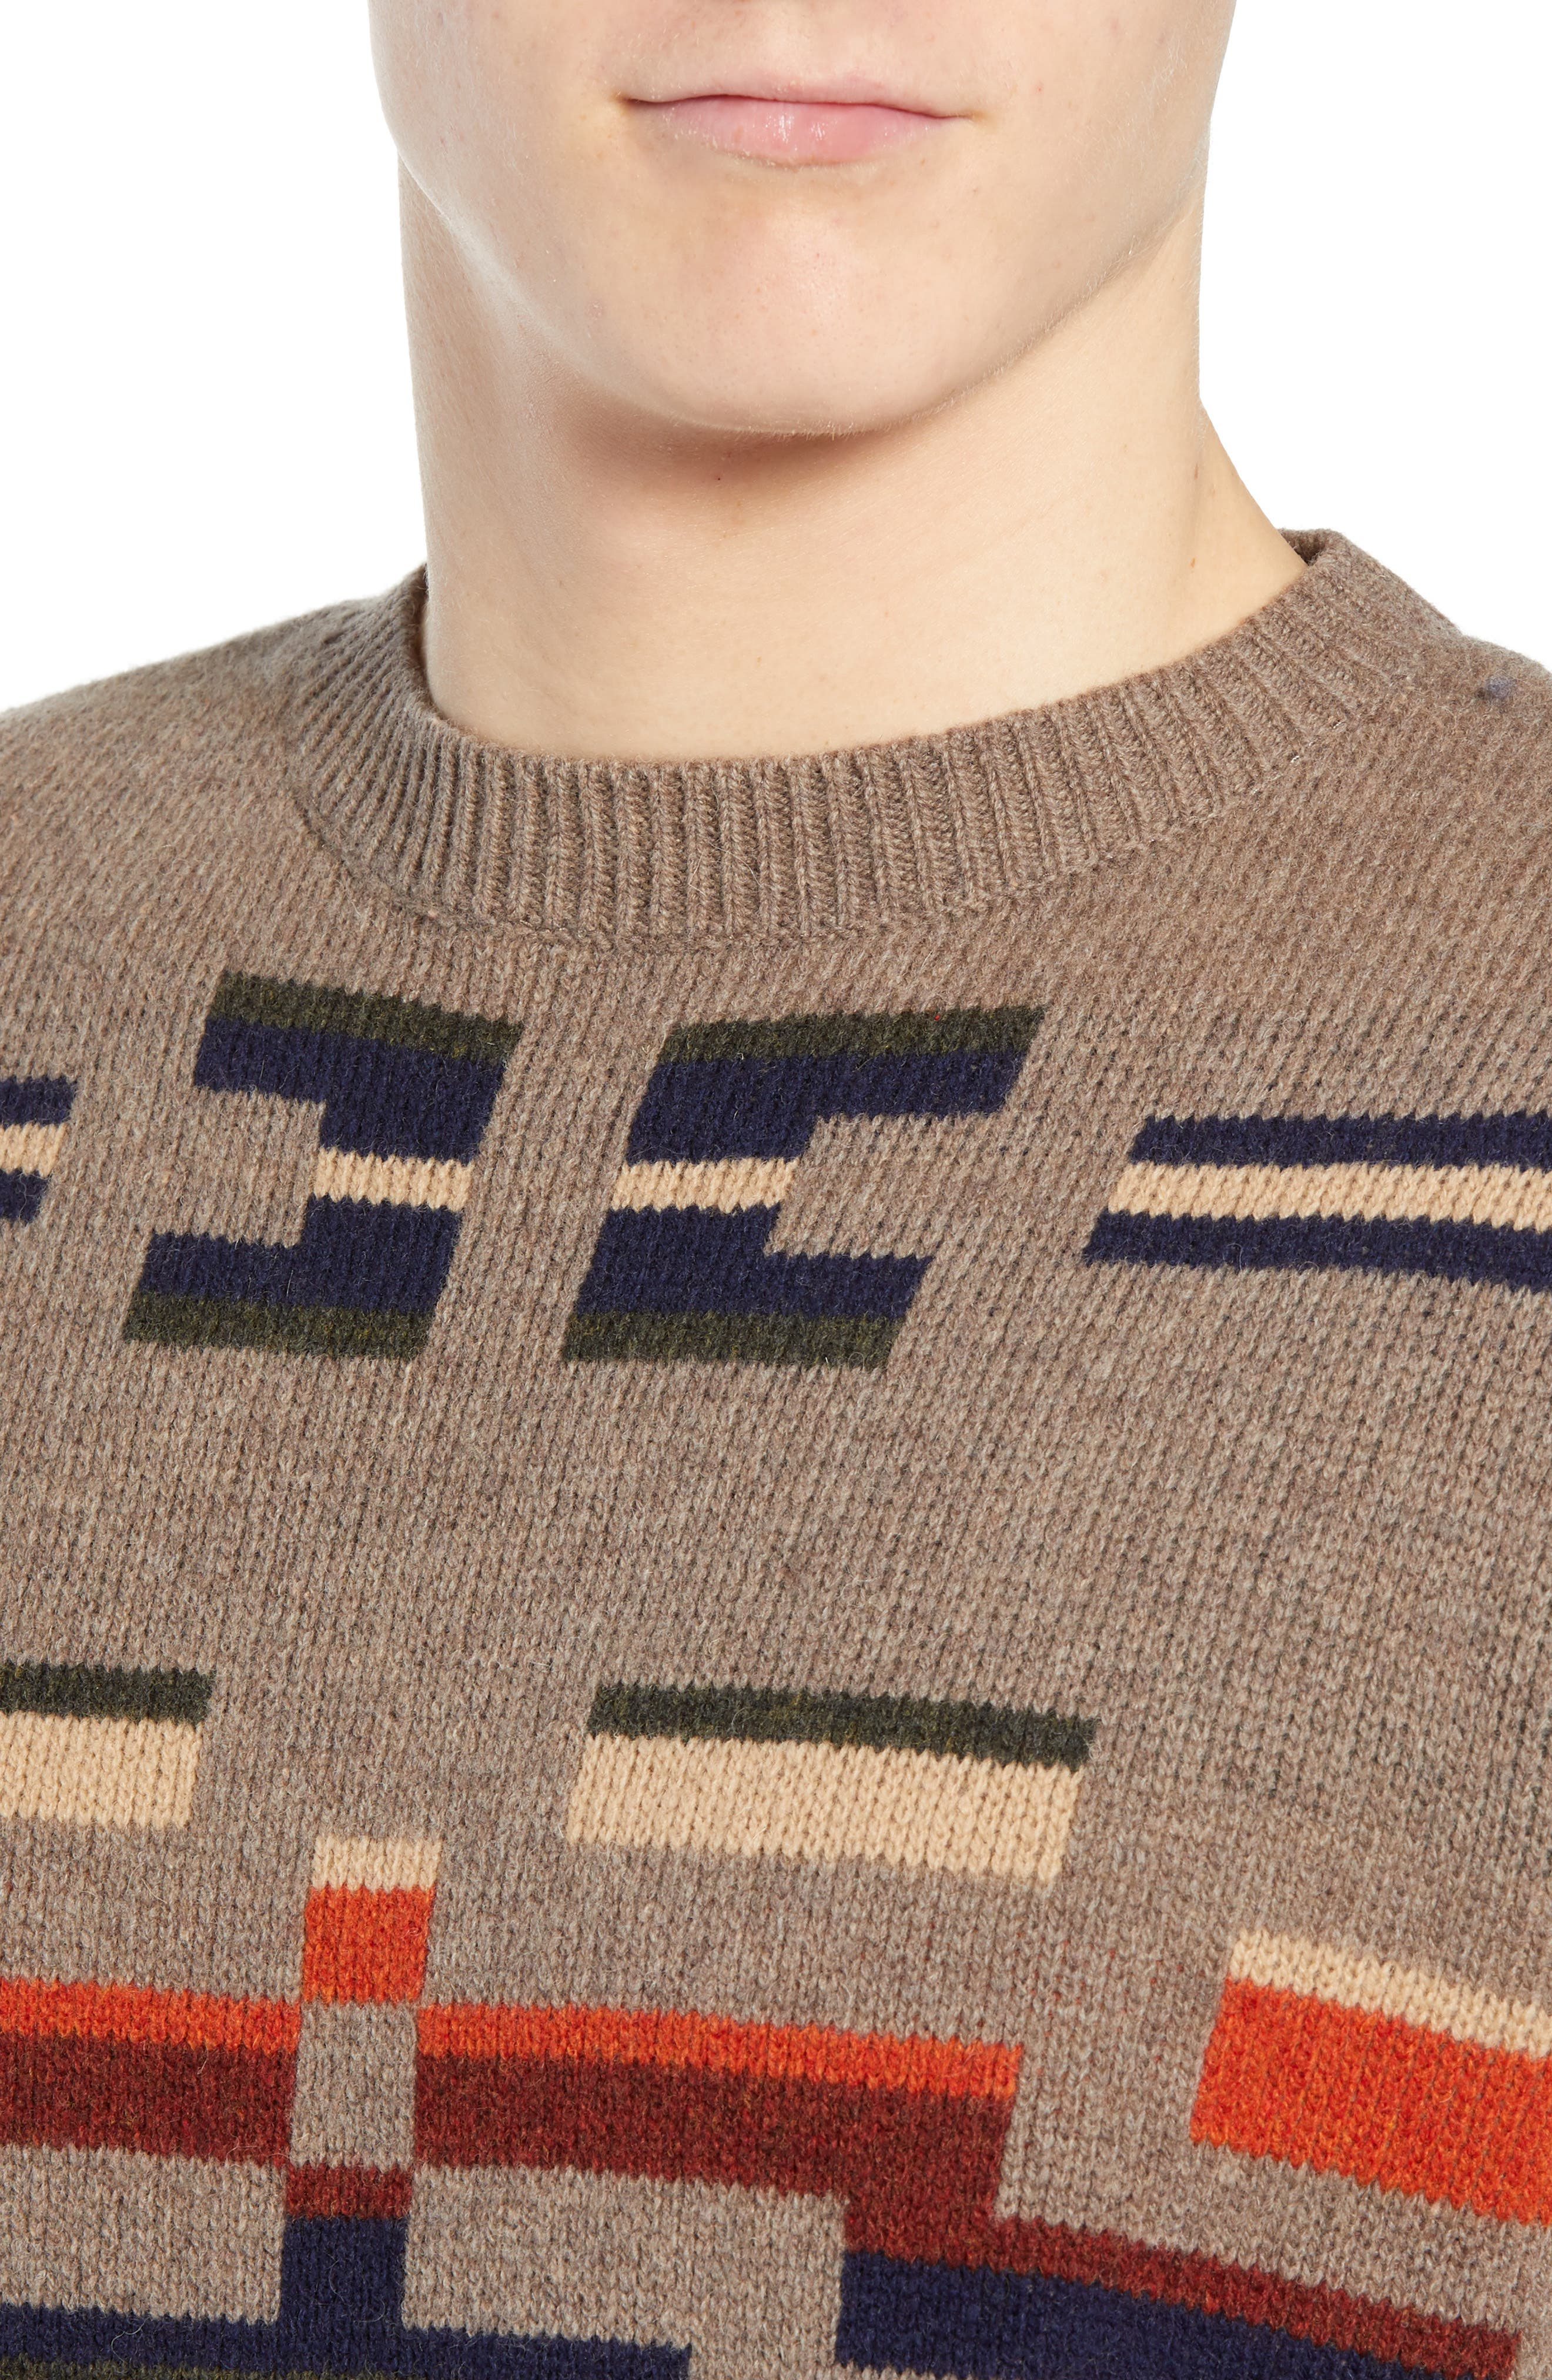 Outdoor Wool Sweater,                             Alternate thumbnail 4, color,                             MULTI NOVELTY MOTIF